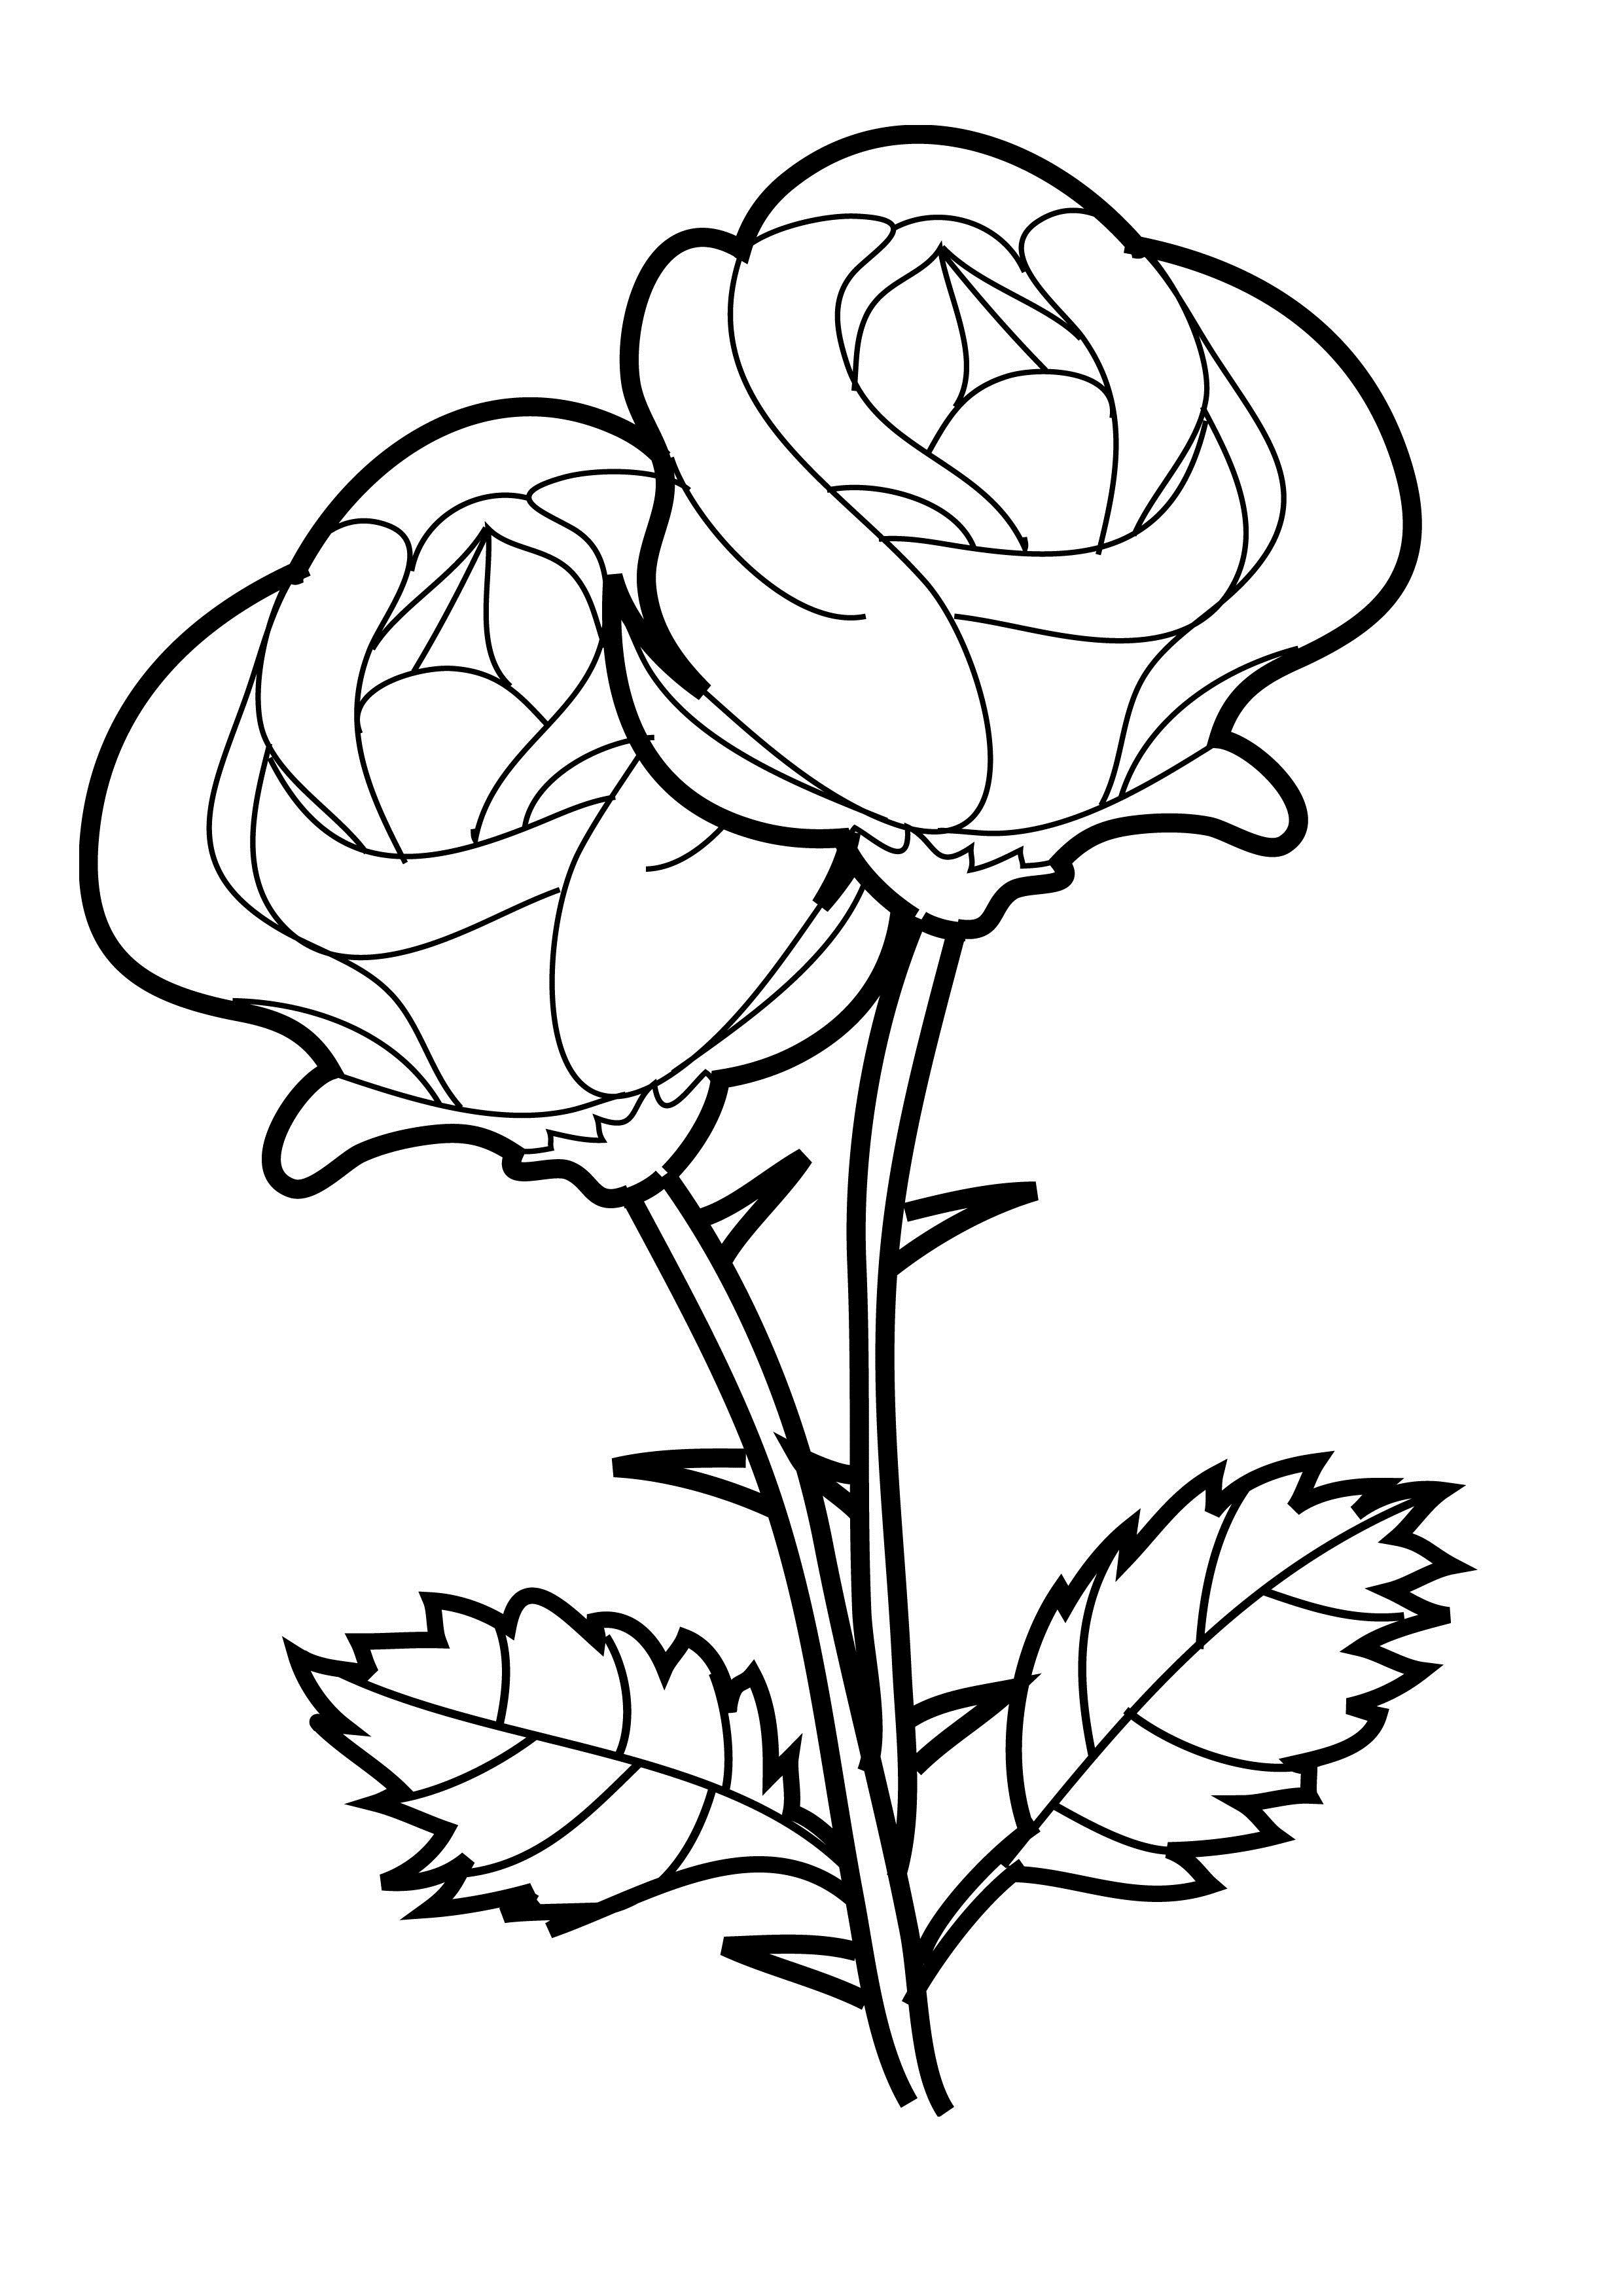 rose coloring pictures roses coloring pages to download and print for free rose pictures coloring